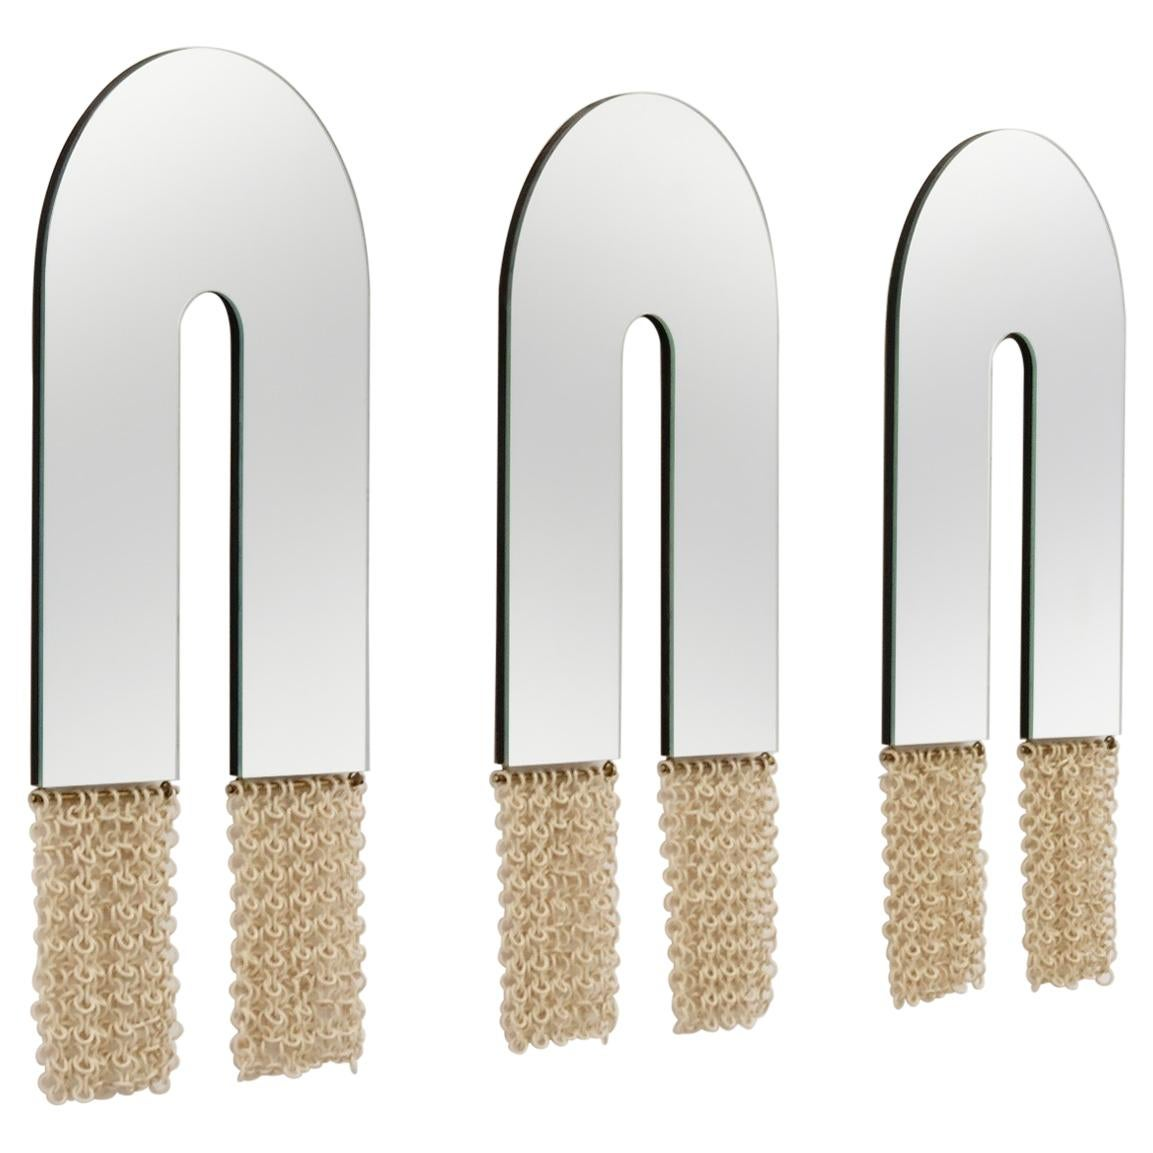 Contemporary Ceramic Chainmail Arched Mirrors Set in Ivory